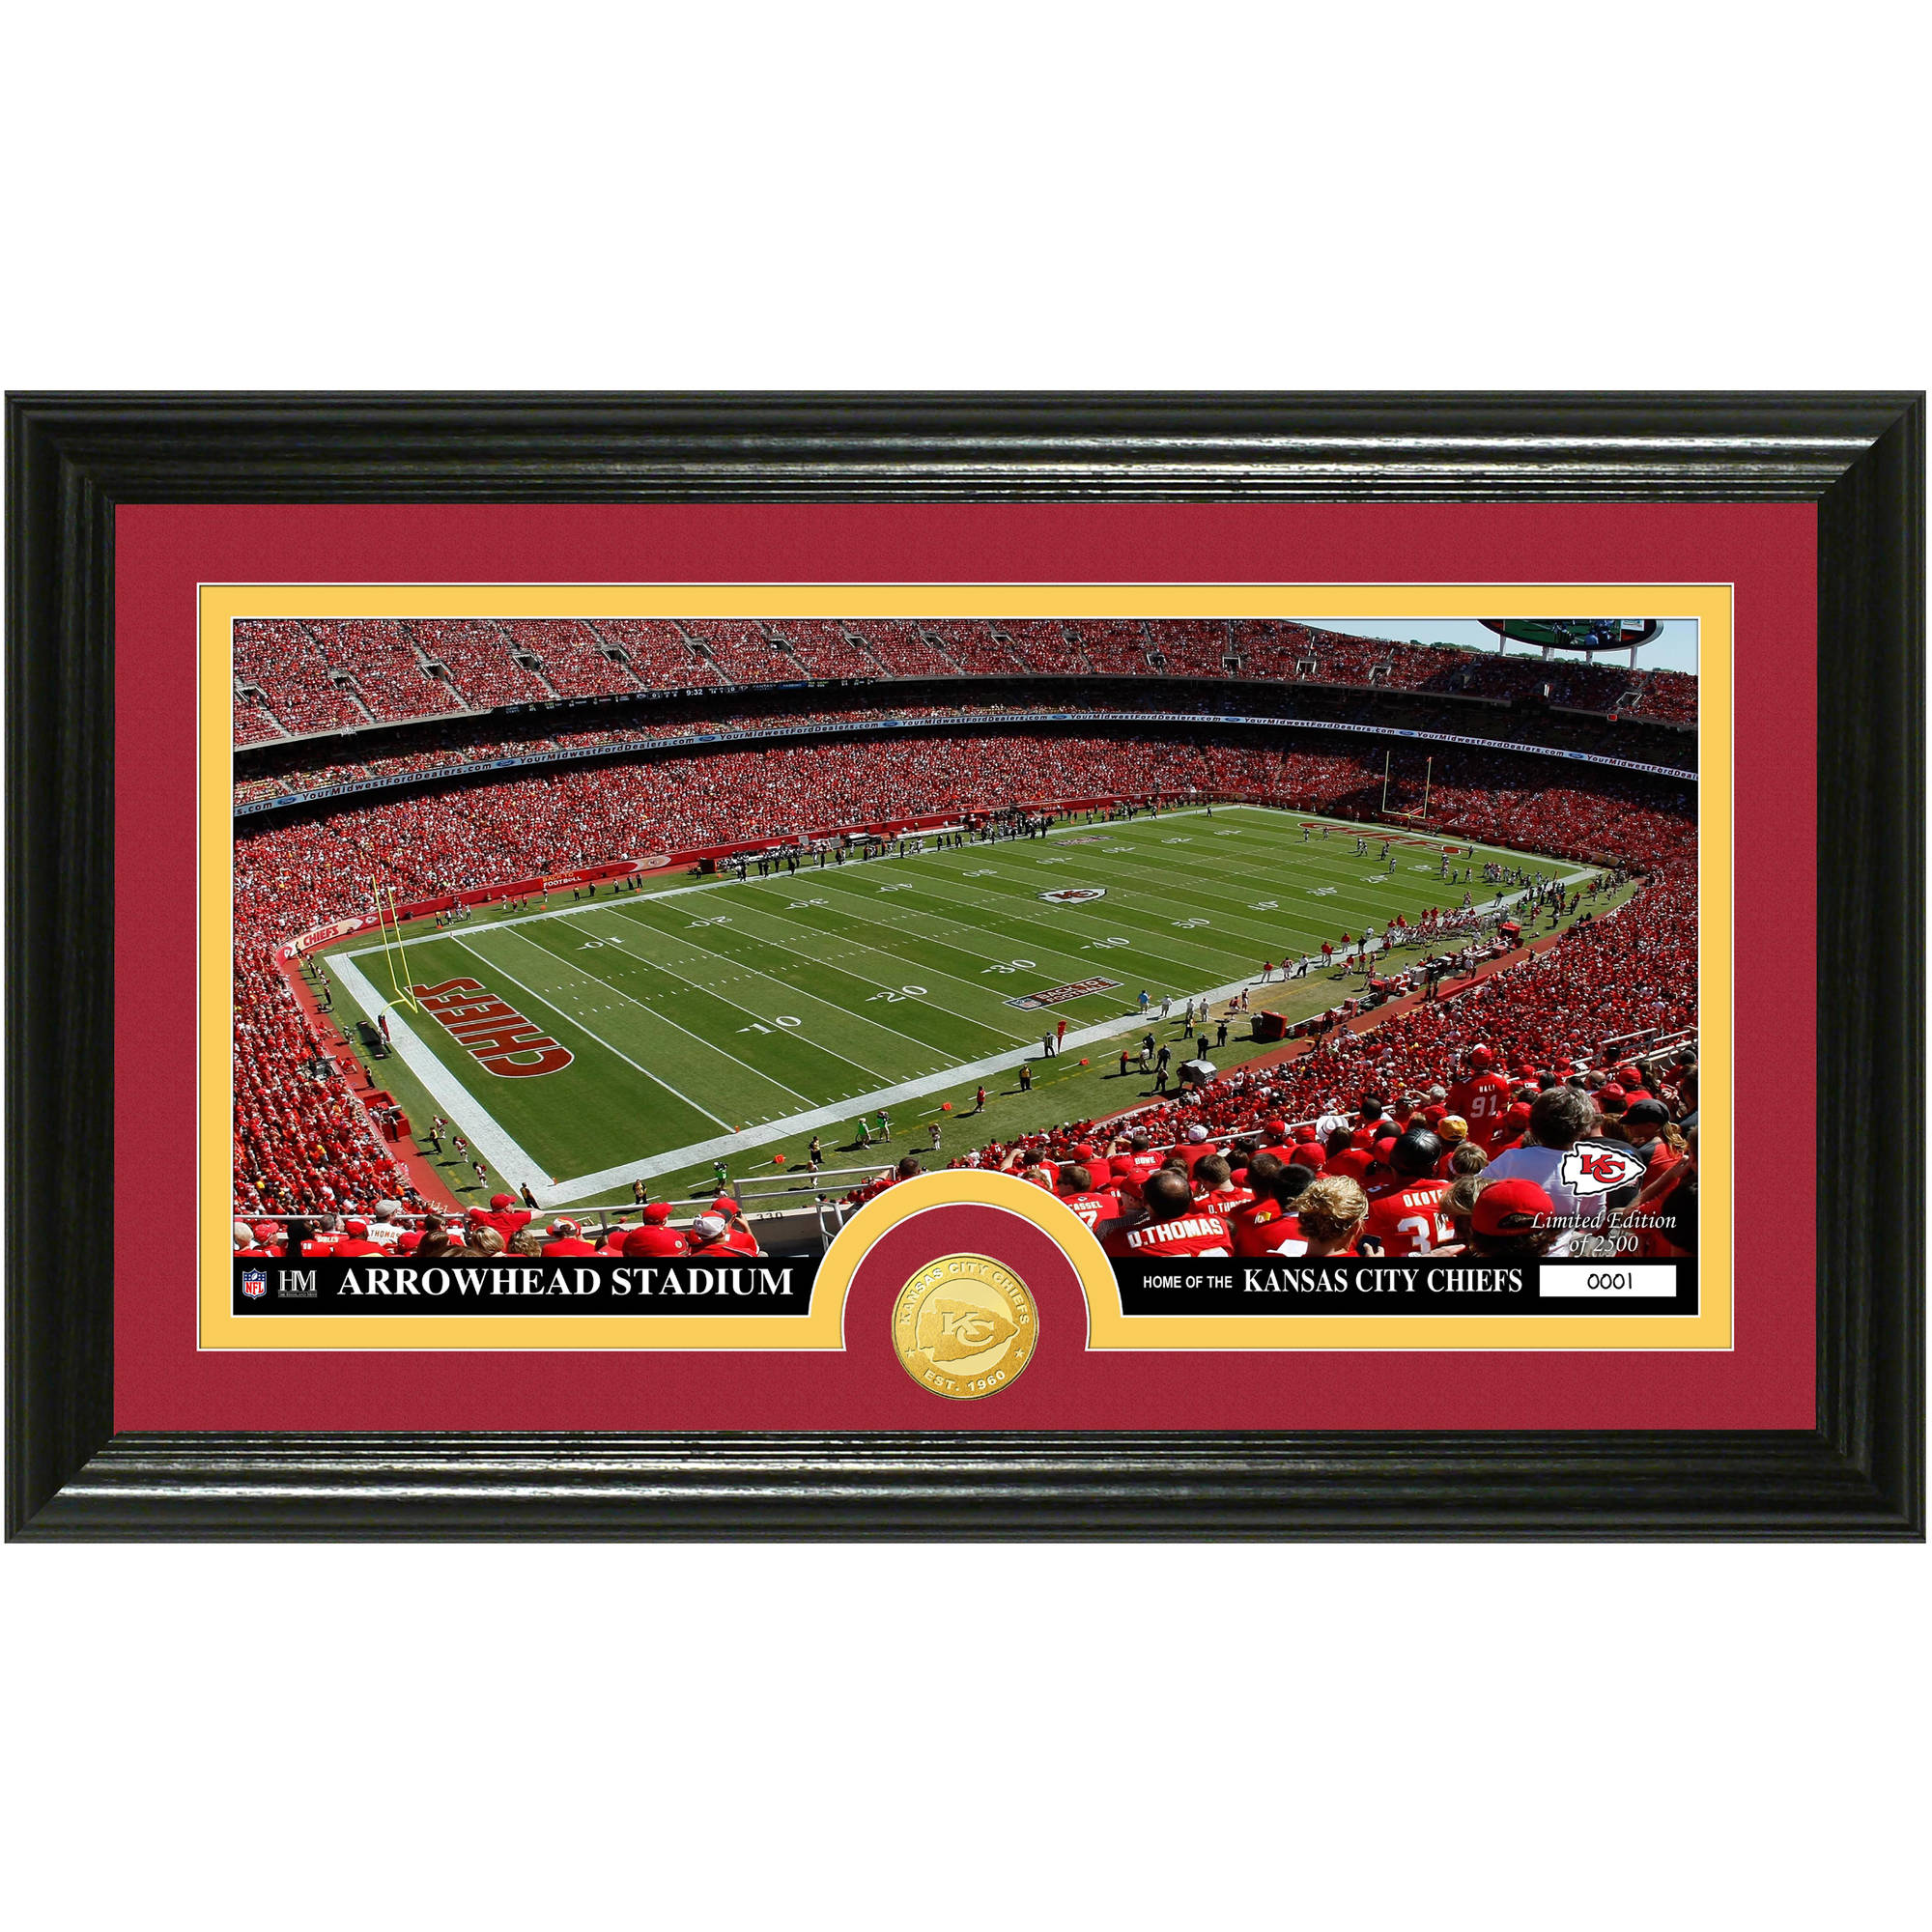 The Highland Mint NFL Stadium Bronze Coin Panoramic Photo Mint, Kansas City Chiefs